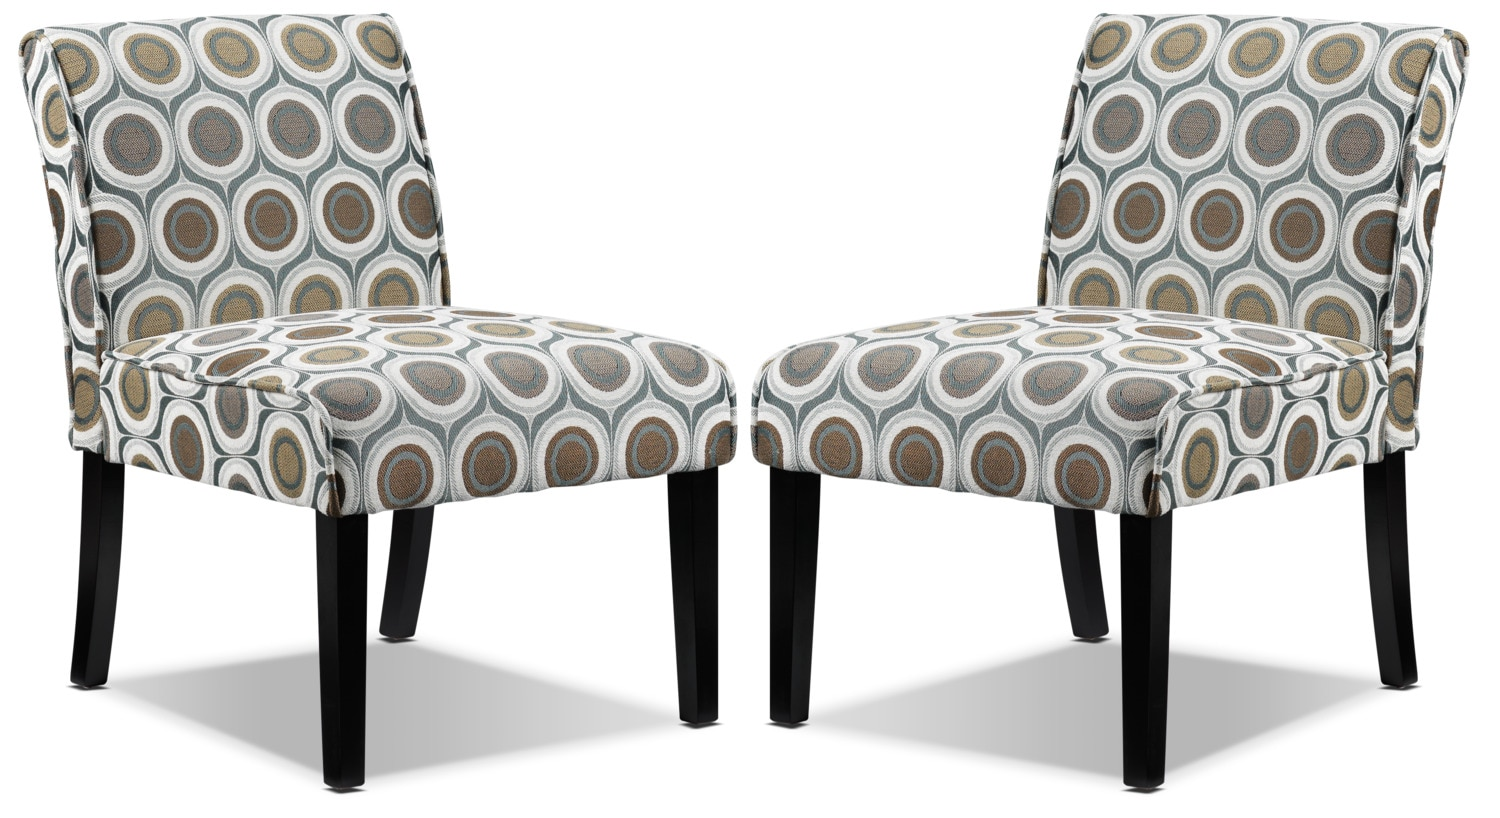 Audrina 2-Pack of Slipper Chairs